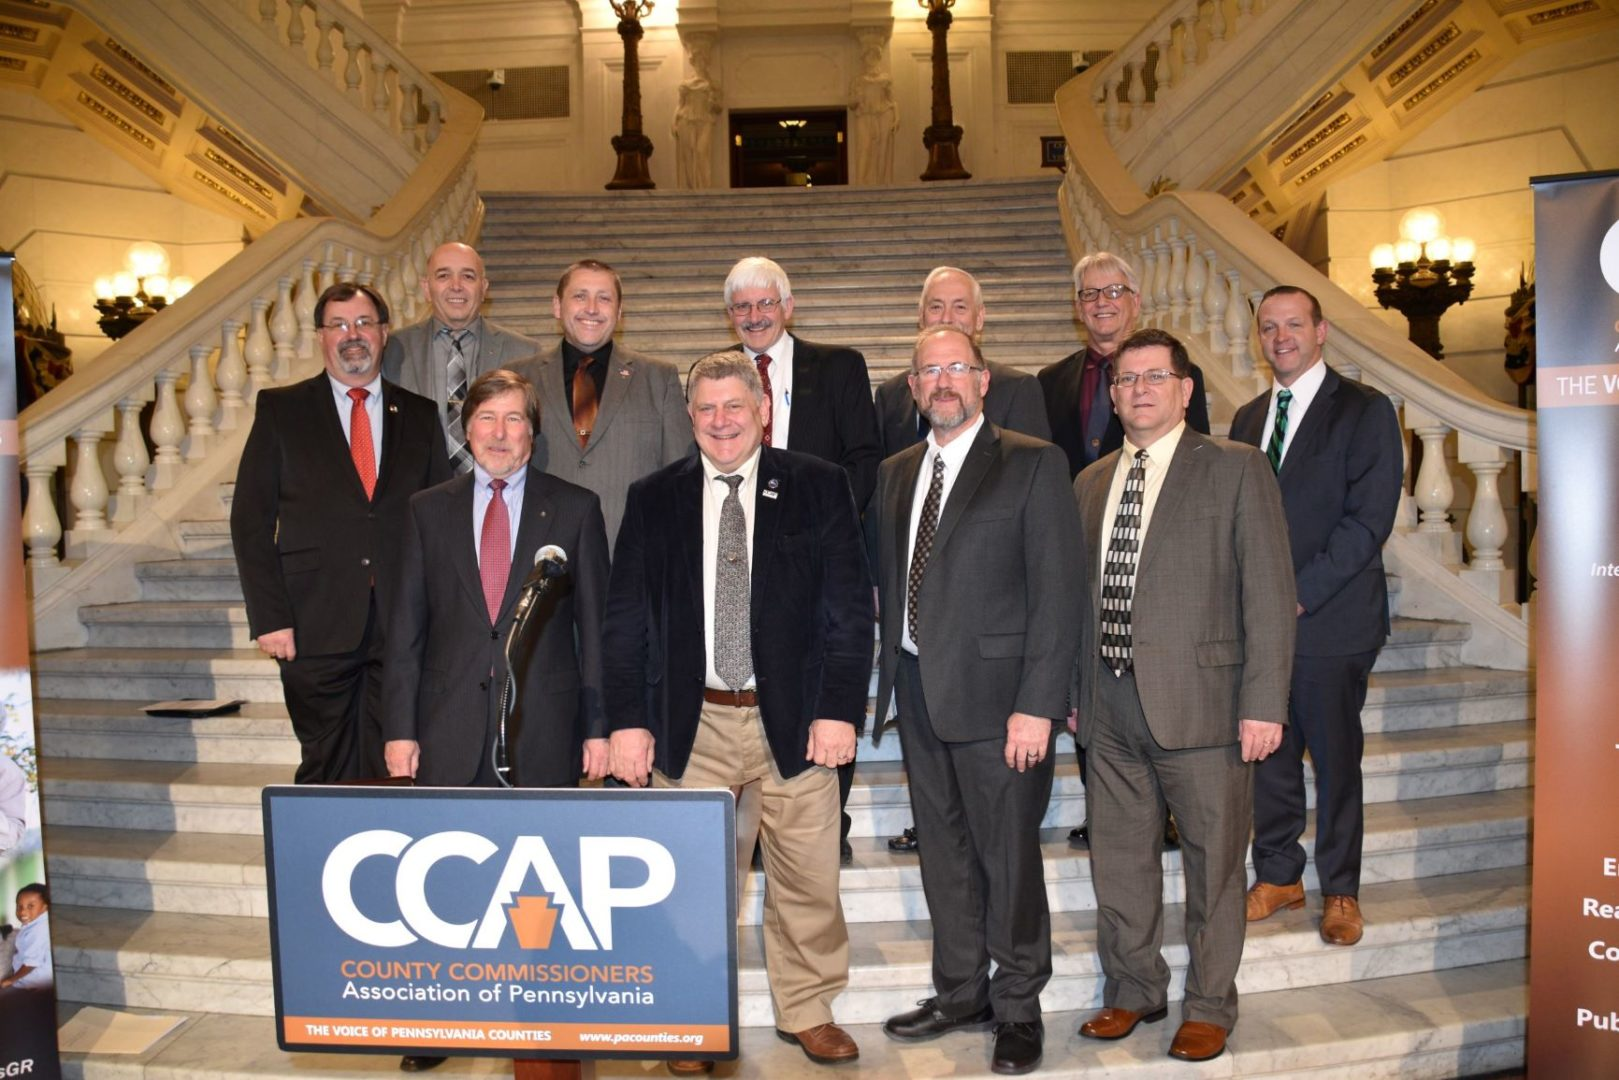 Photo of 11 Pennsylvania County Commissioners at the County Commissioners Association of Pennsylvania conference